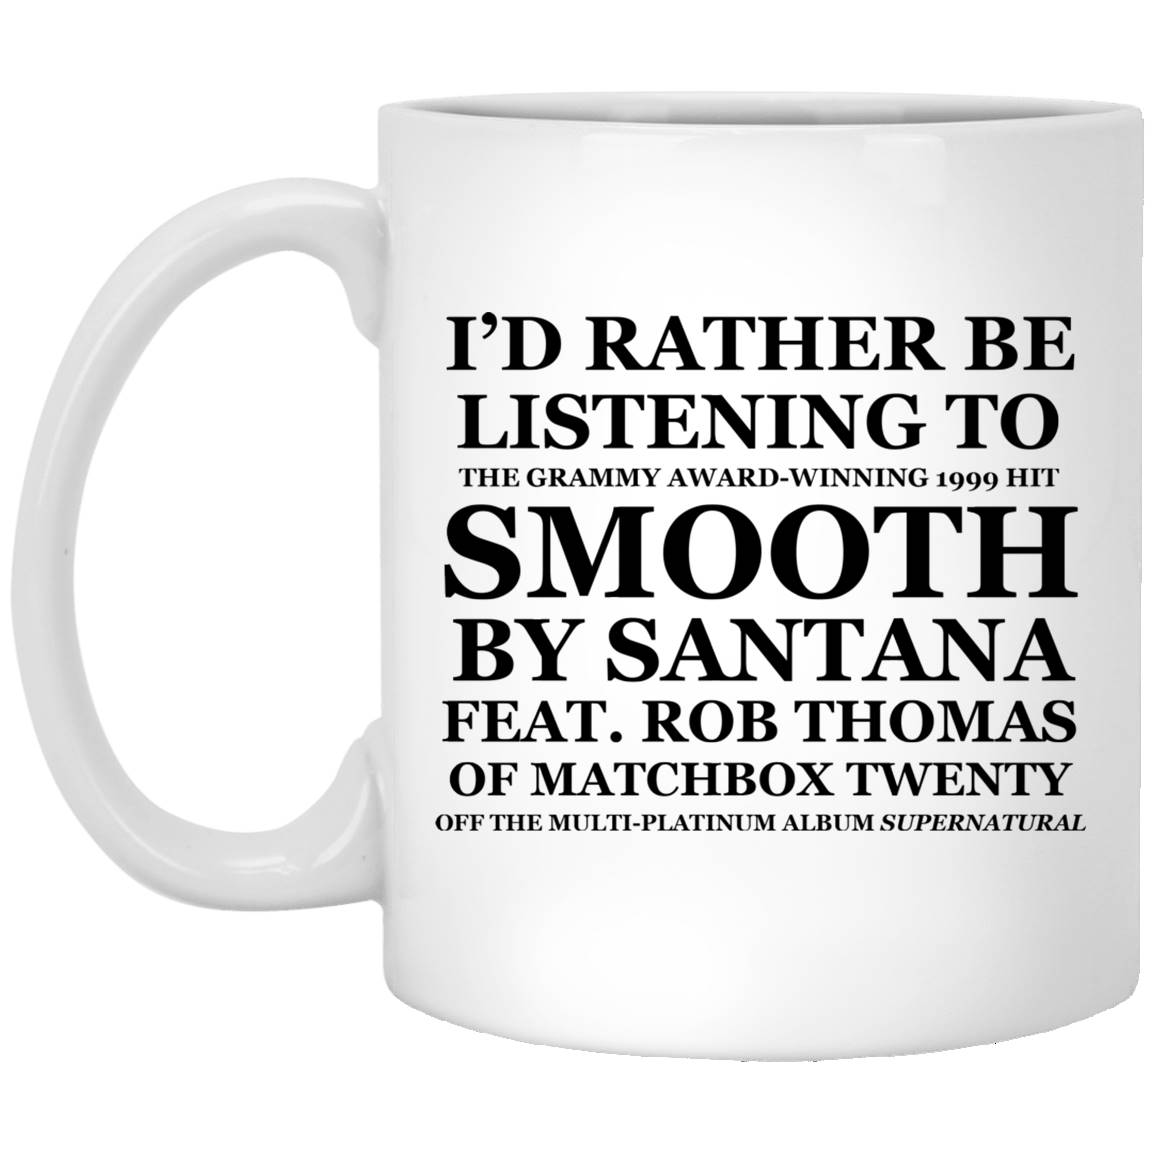 I'd Rather Be Listening To SMOOTH by SANTANA